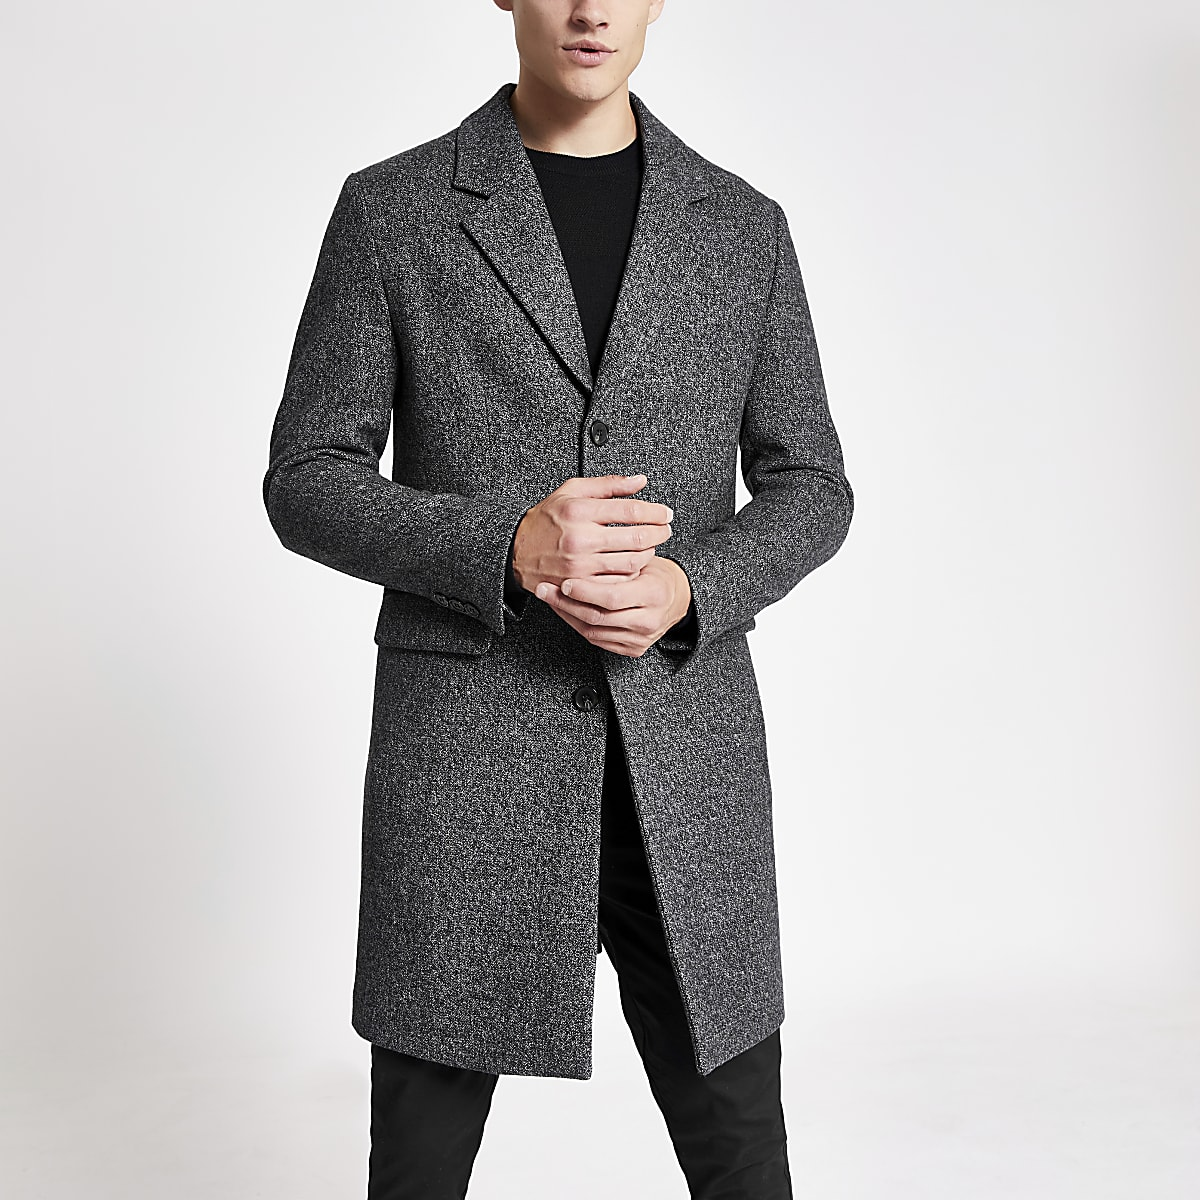 Charcoal grey single breasted wool overcoat